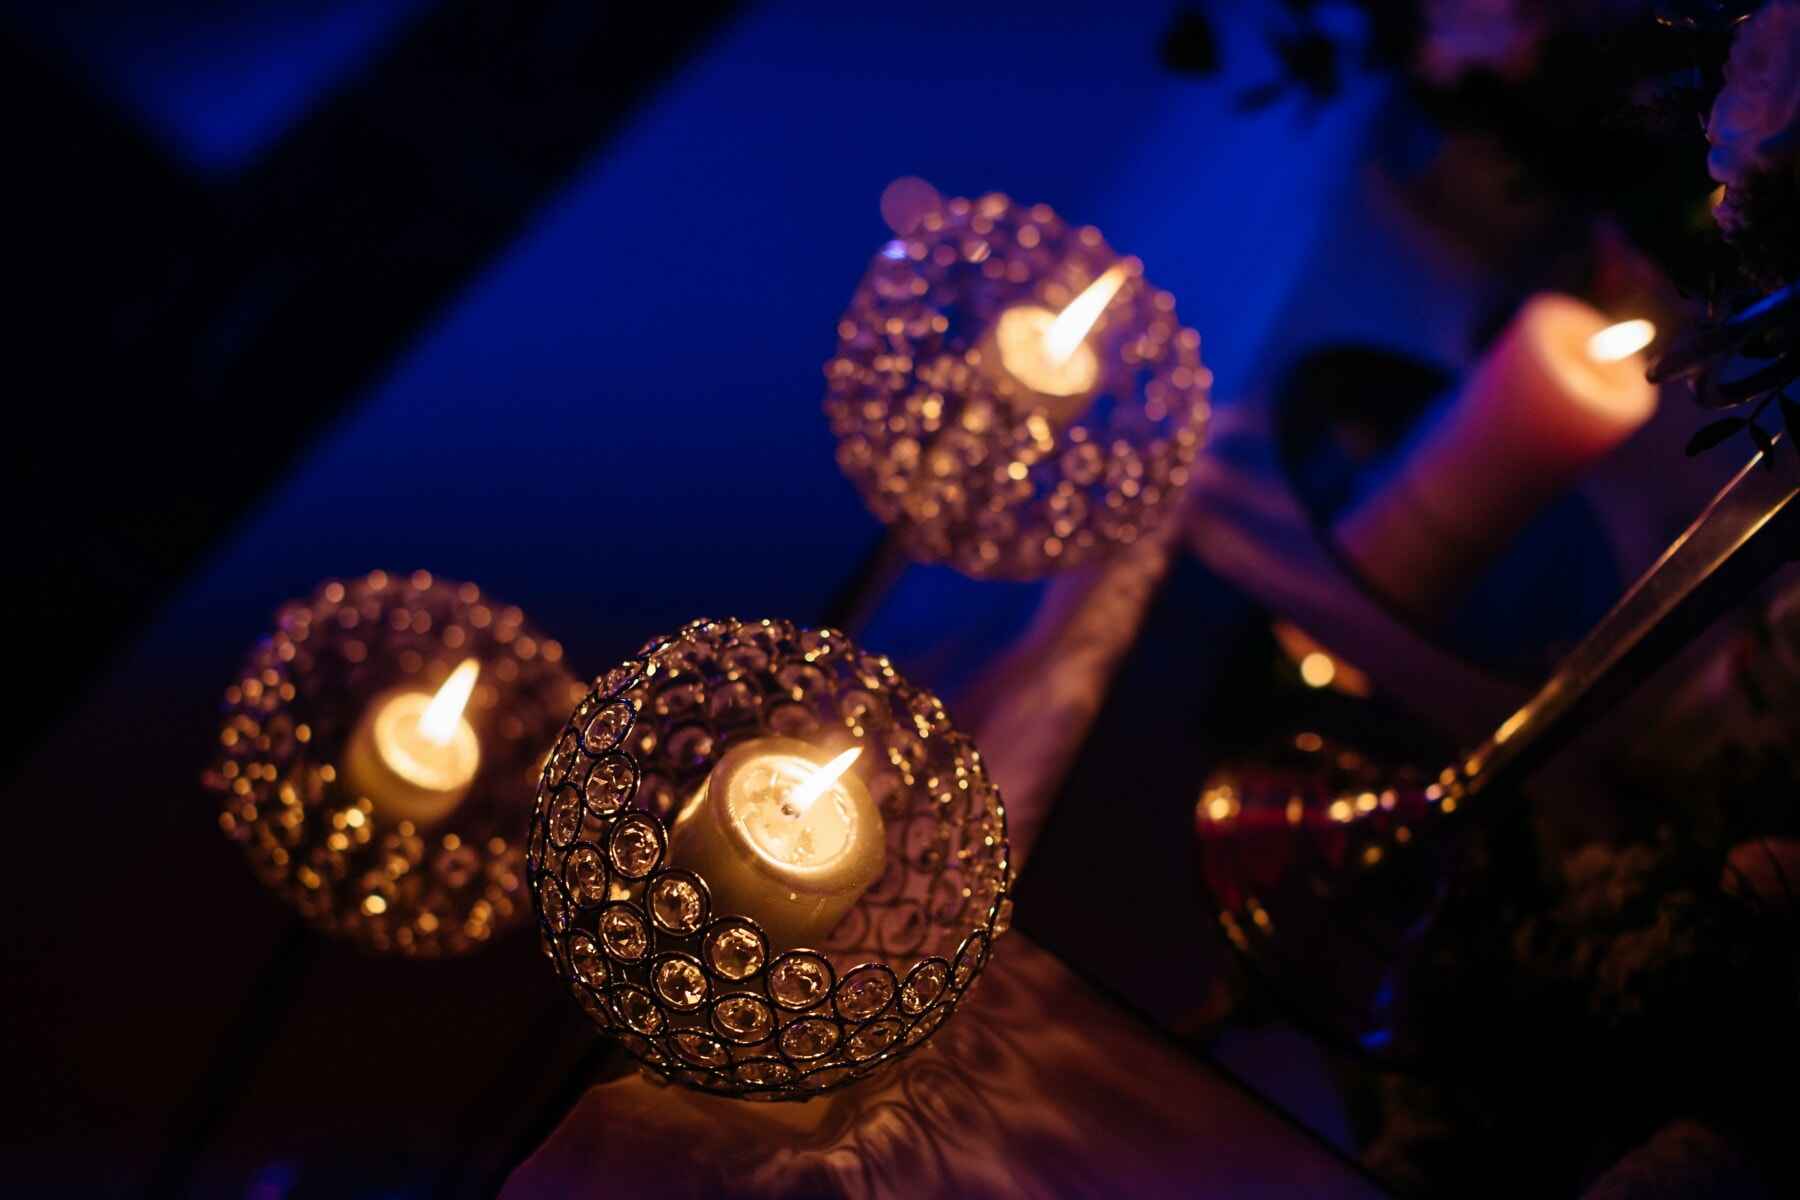 candlestick, crystal, fancy, darkness, candles, light, candlelight, candle, flame, dark